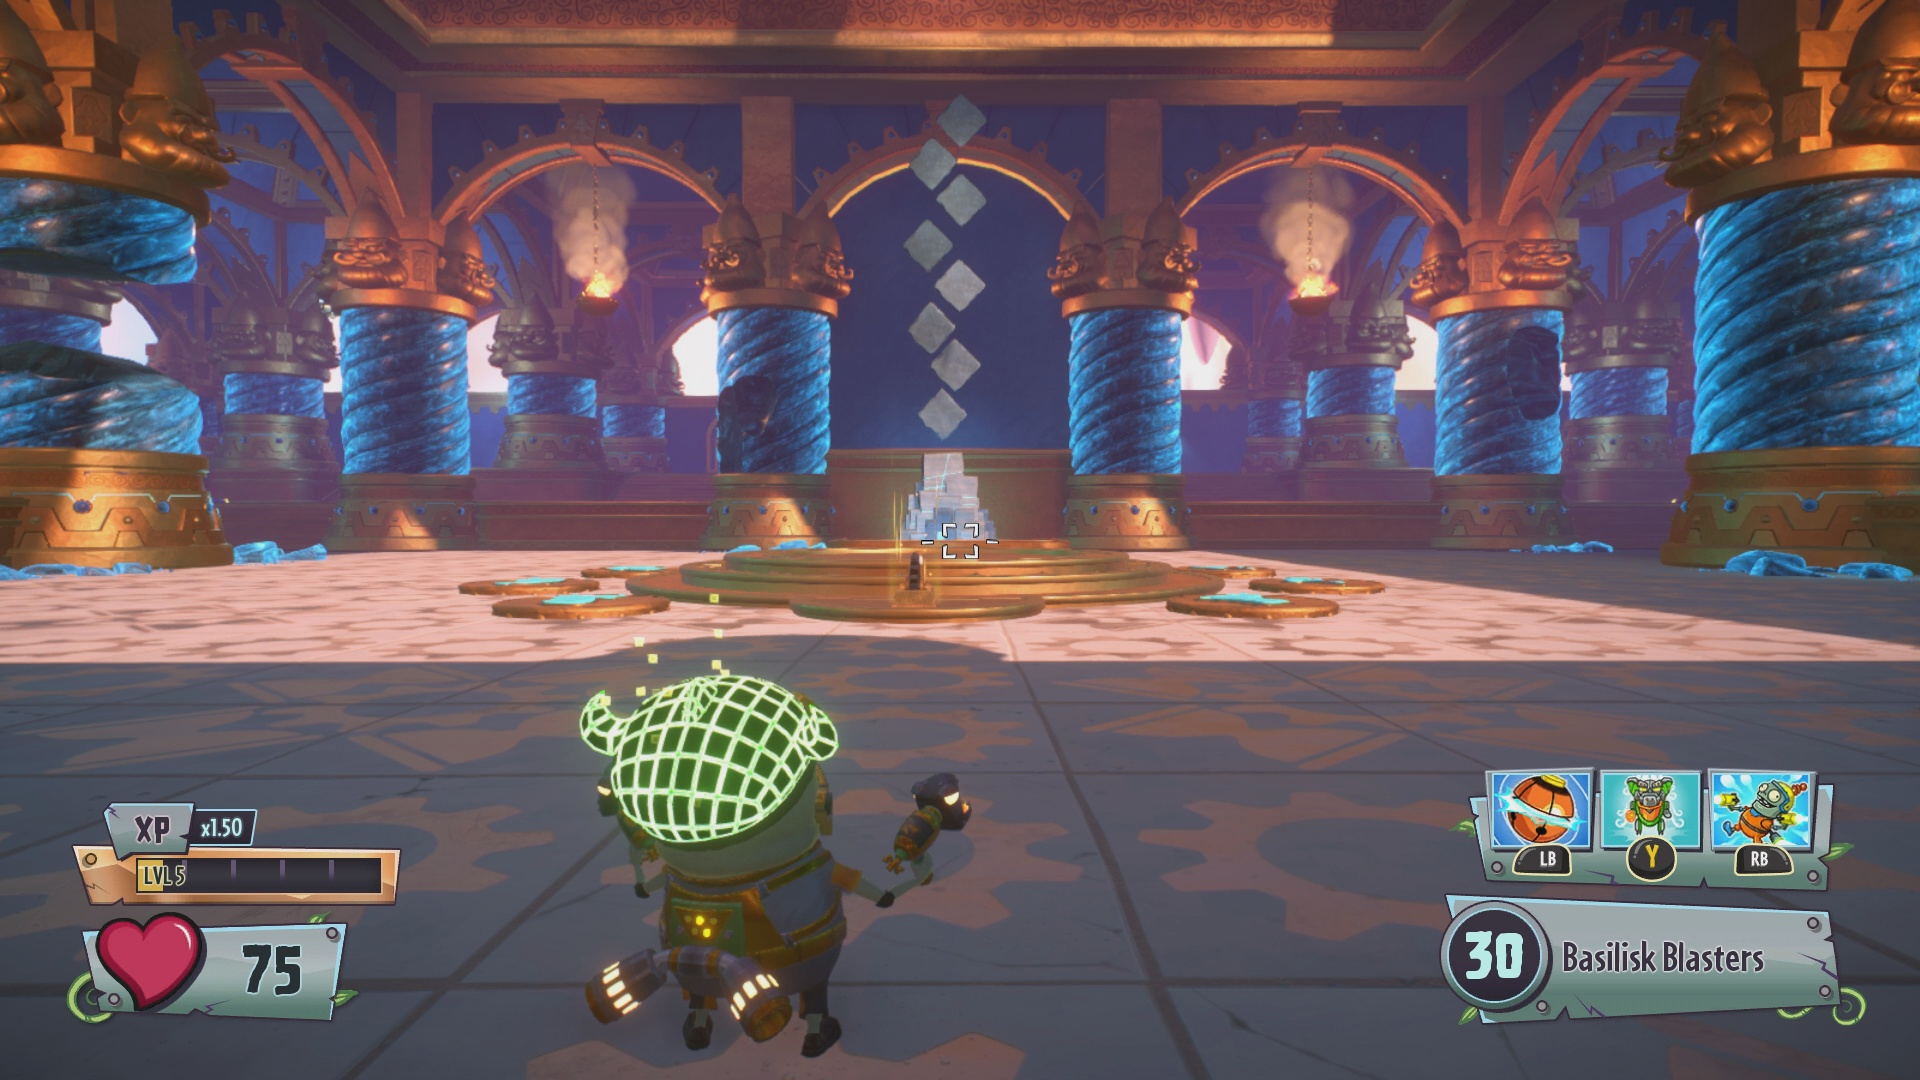 How To Solve The Trials Of Gnomus Lever Puzzle In Pvz Garden Warfare 2 Levelcamp Guides